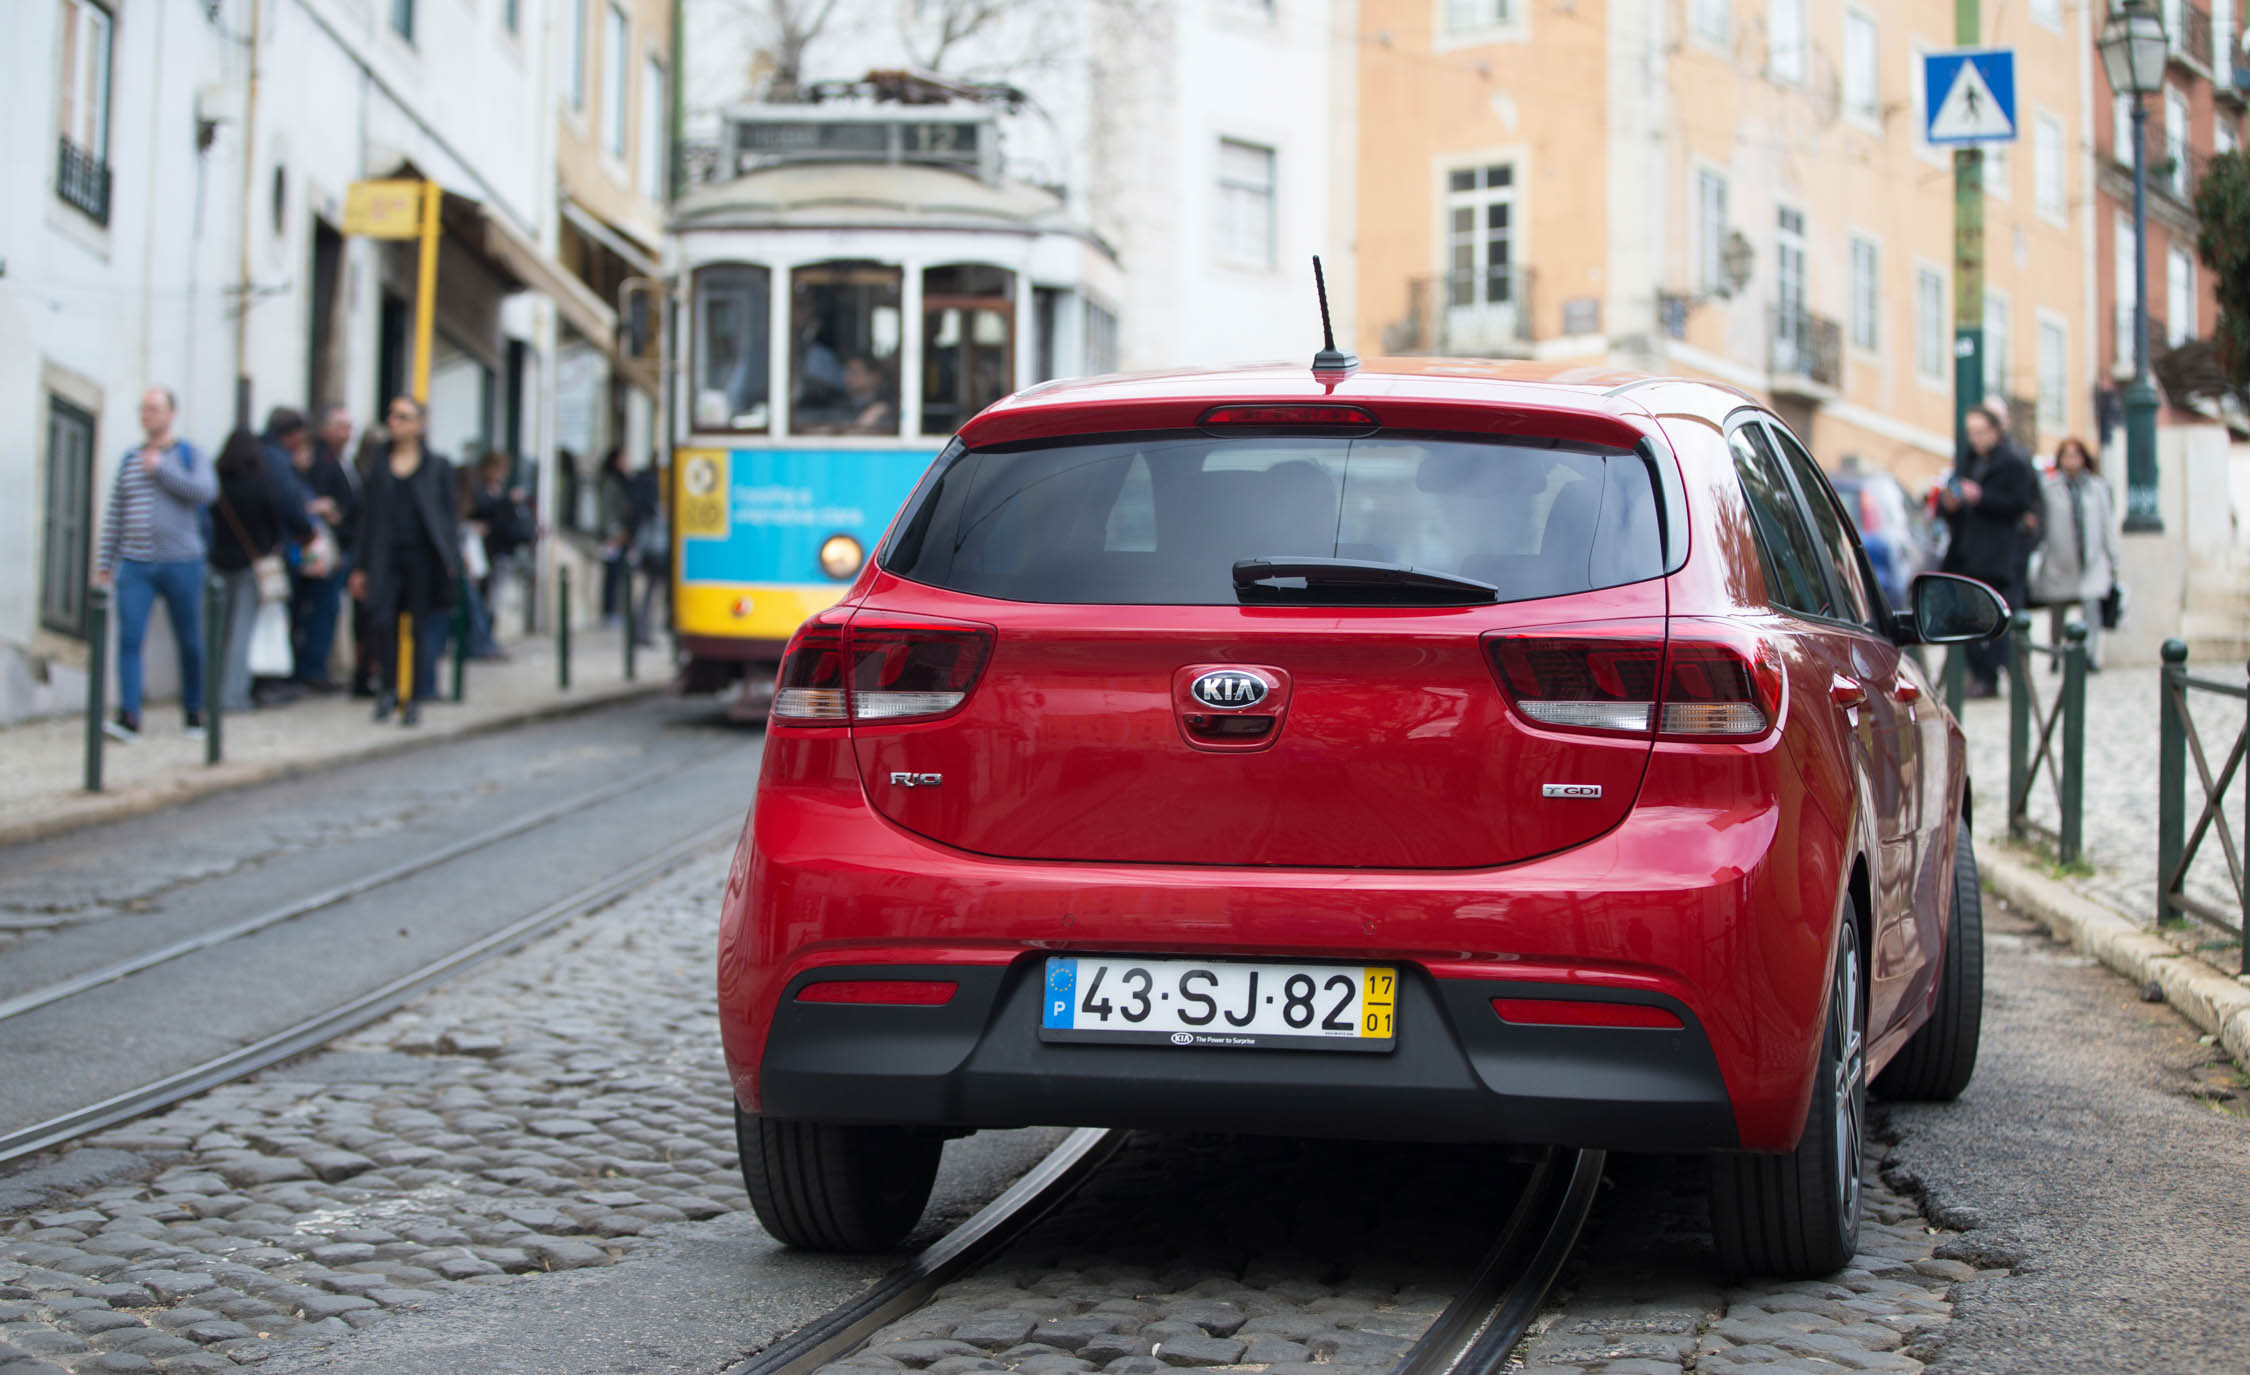 2018 Kia Rio Hatchback Red Exterior Rear (View 15 of 49)